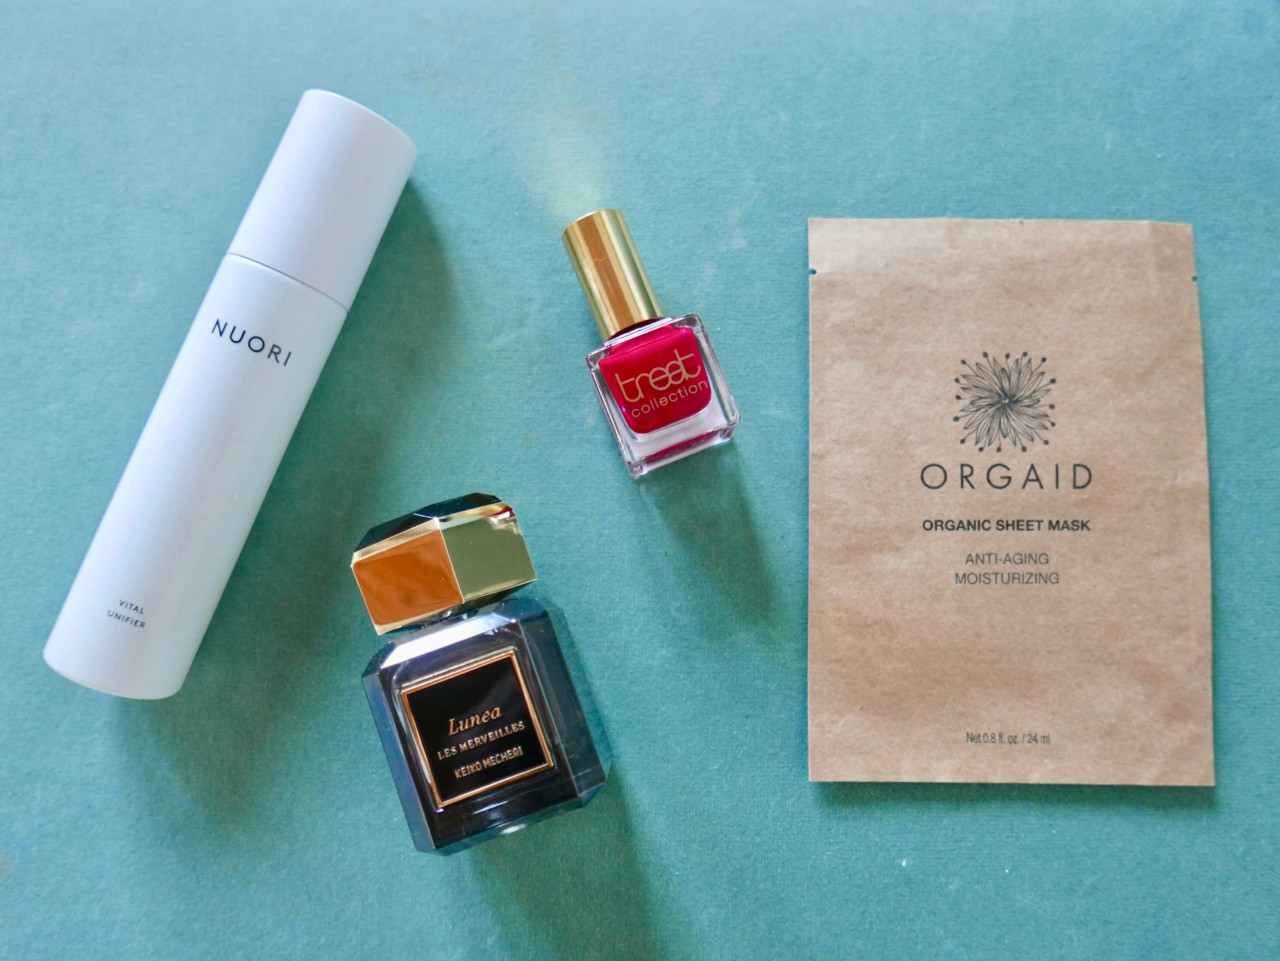 favoritter-origaid-treat-collection-nuori-keiko-mecheri